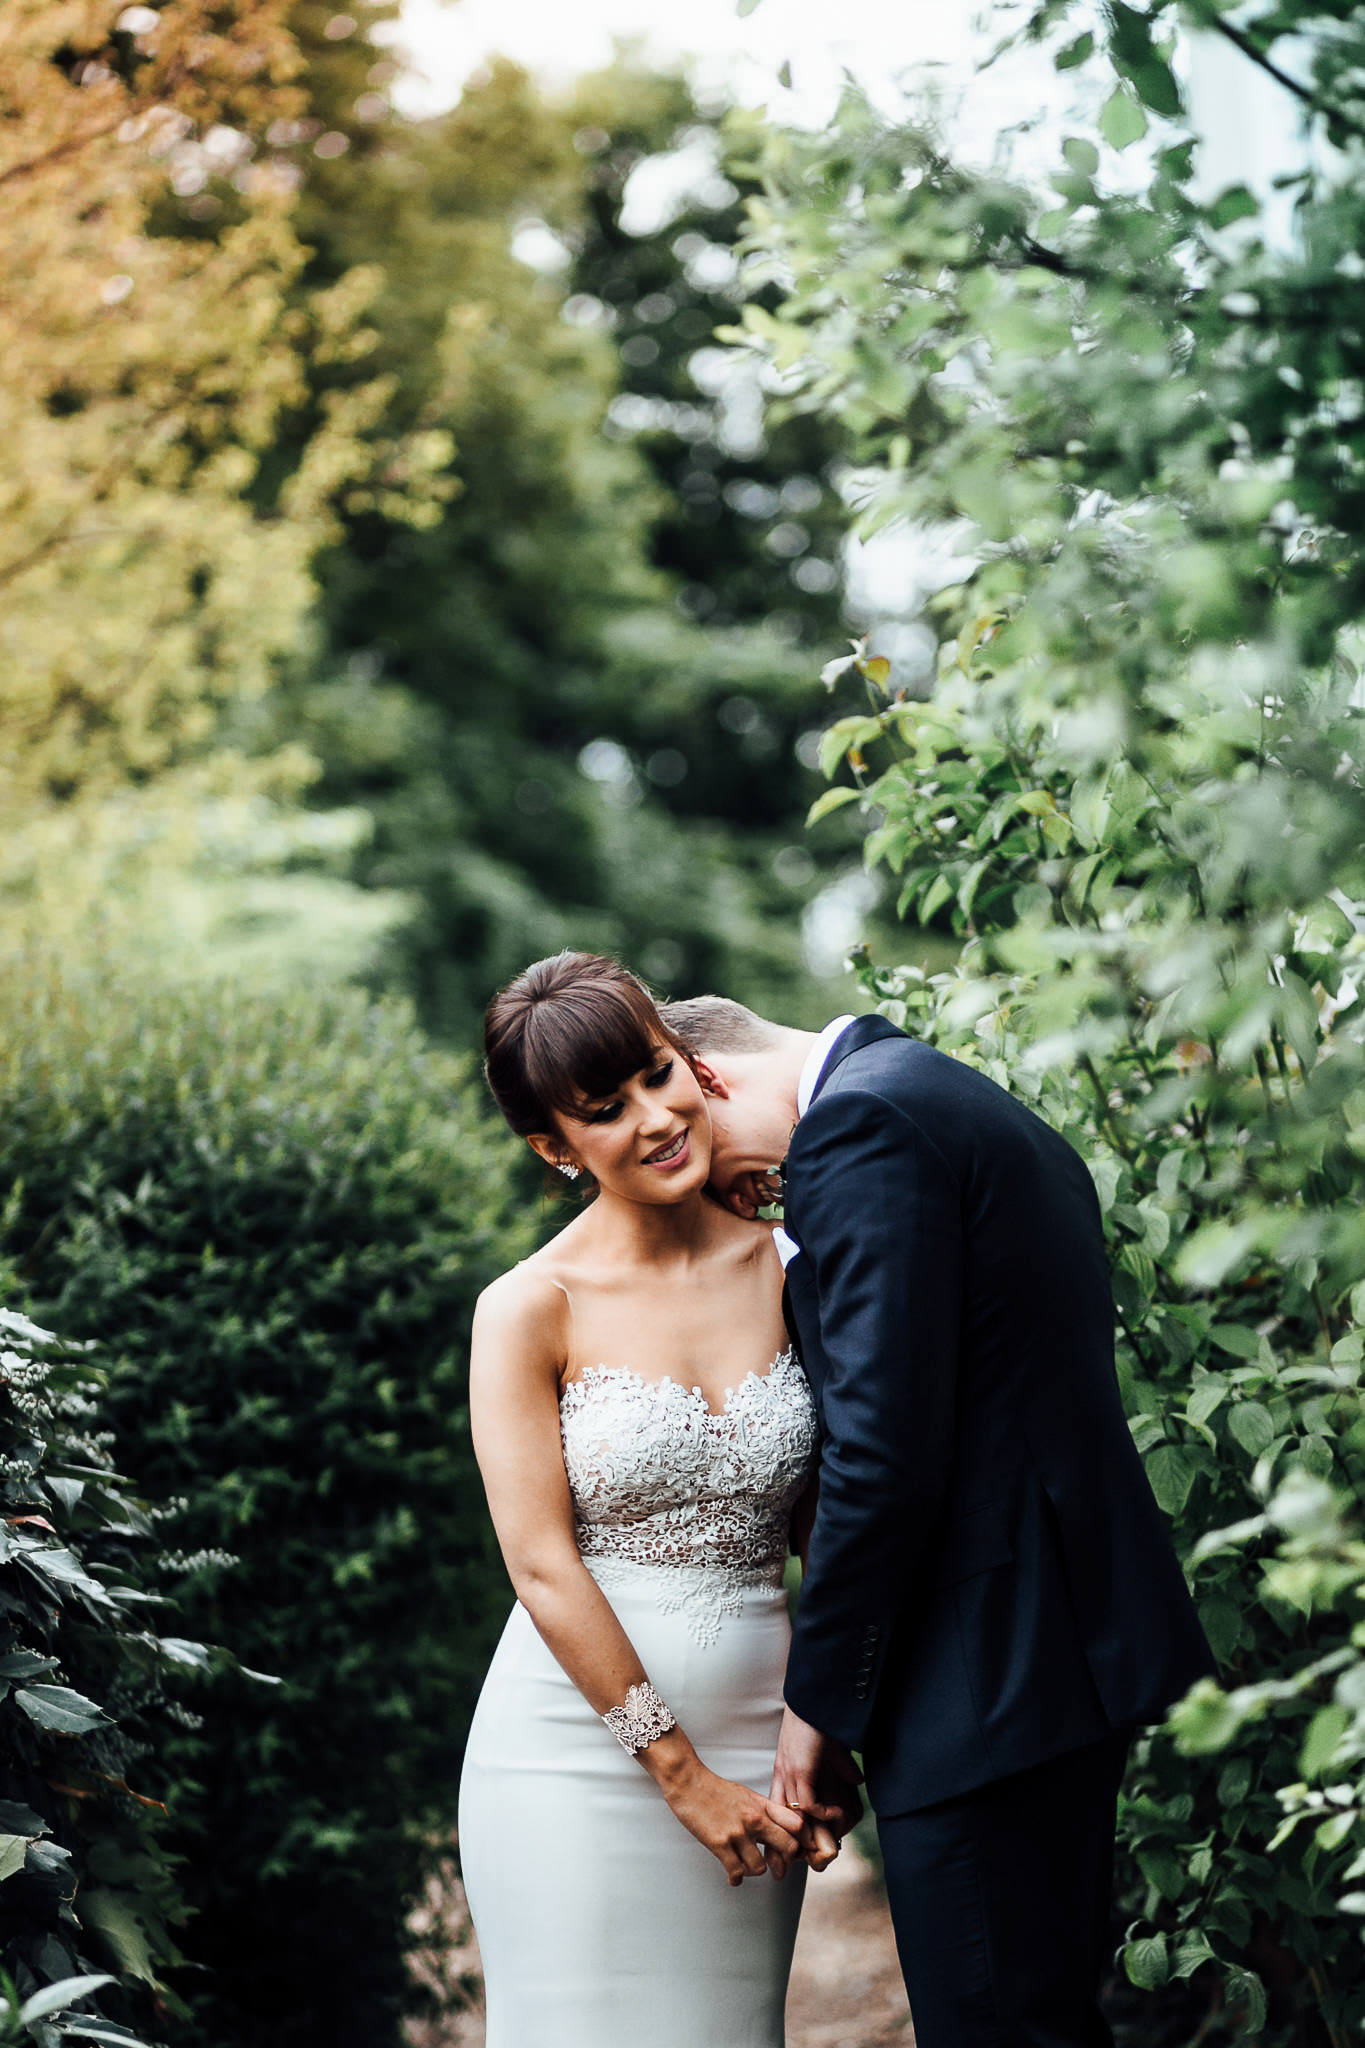 botanical wedding venues in london